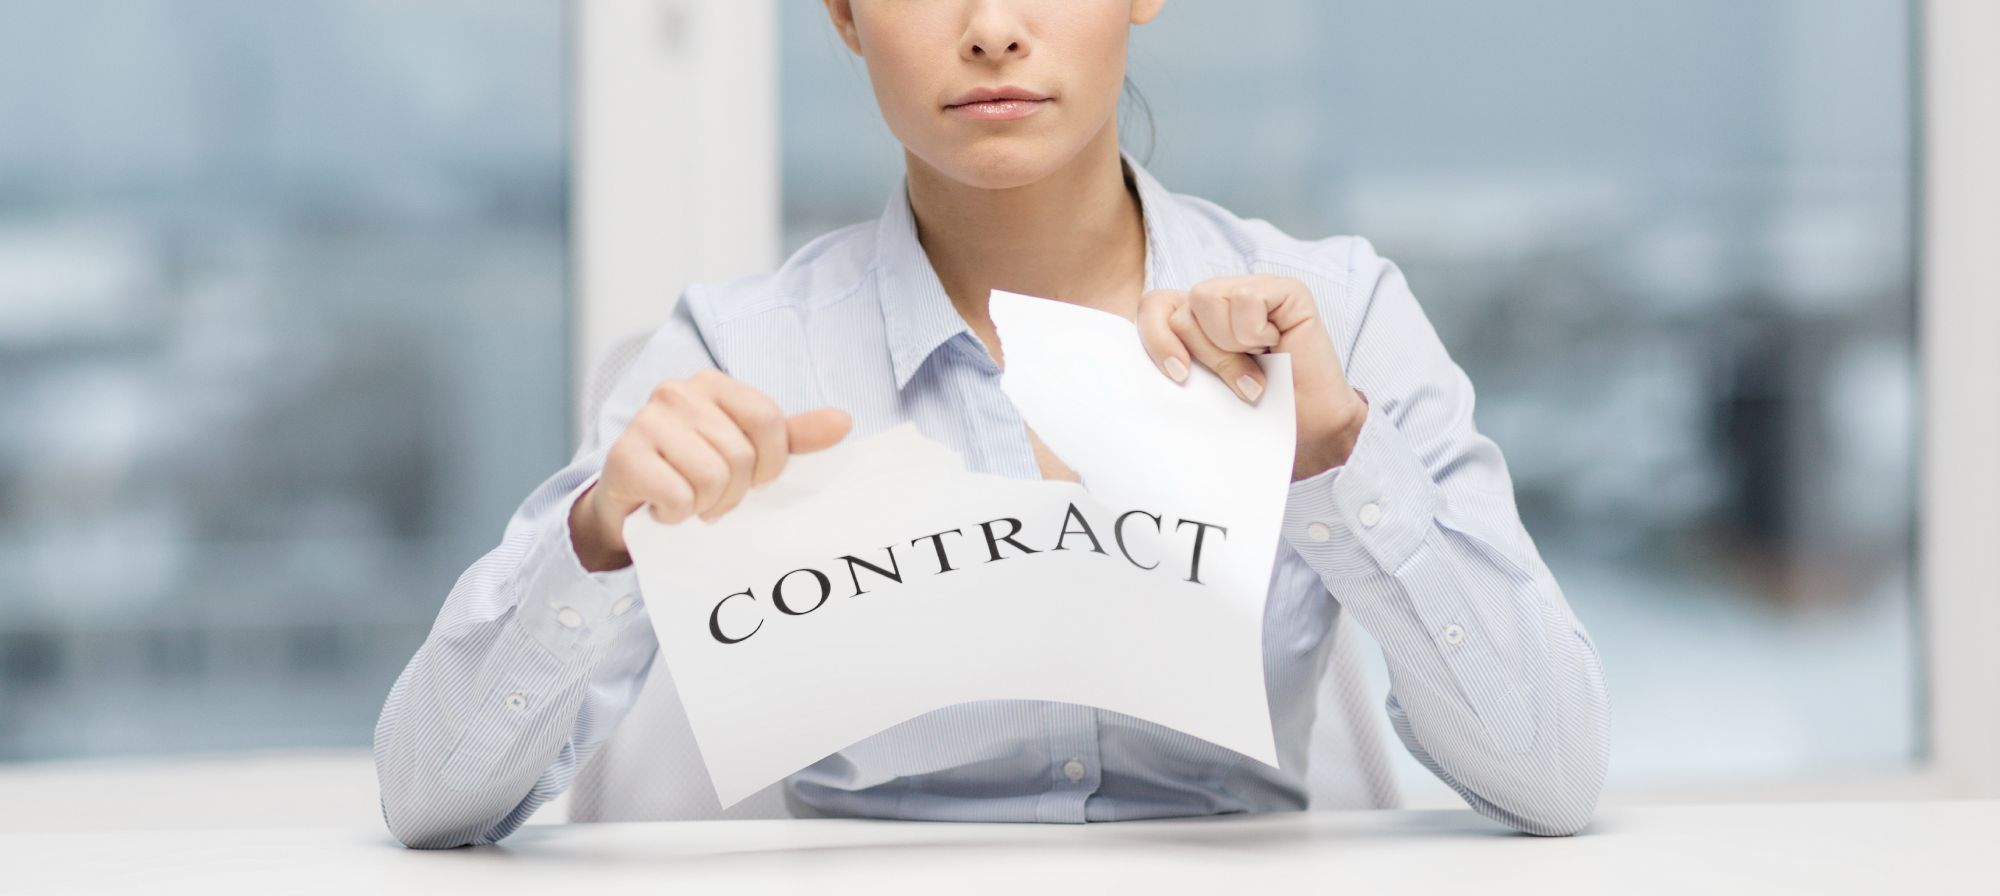 What Makes a Contract Invalid